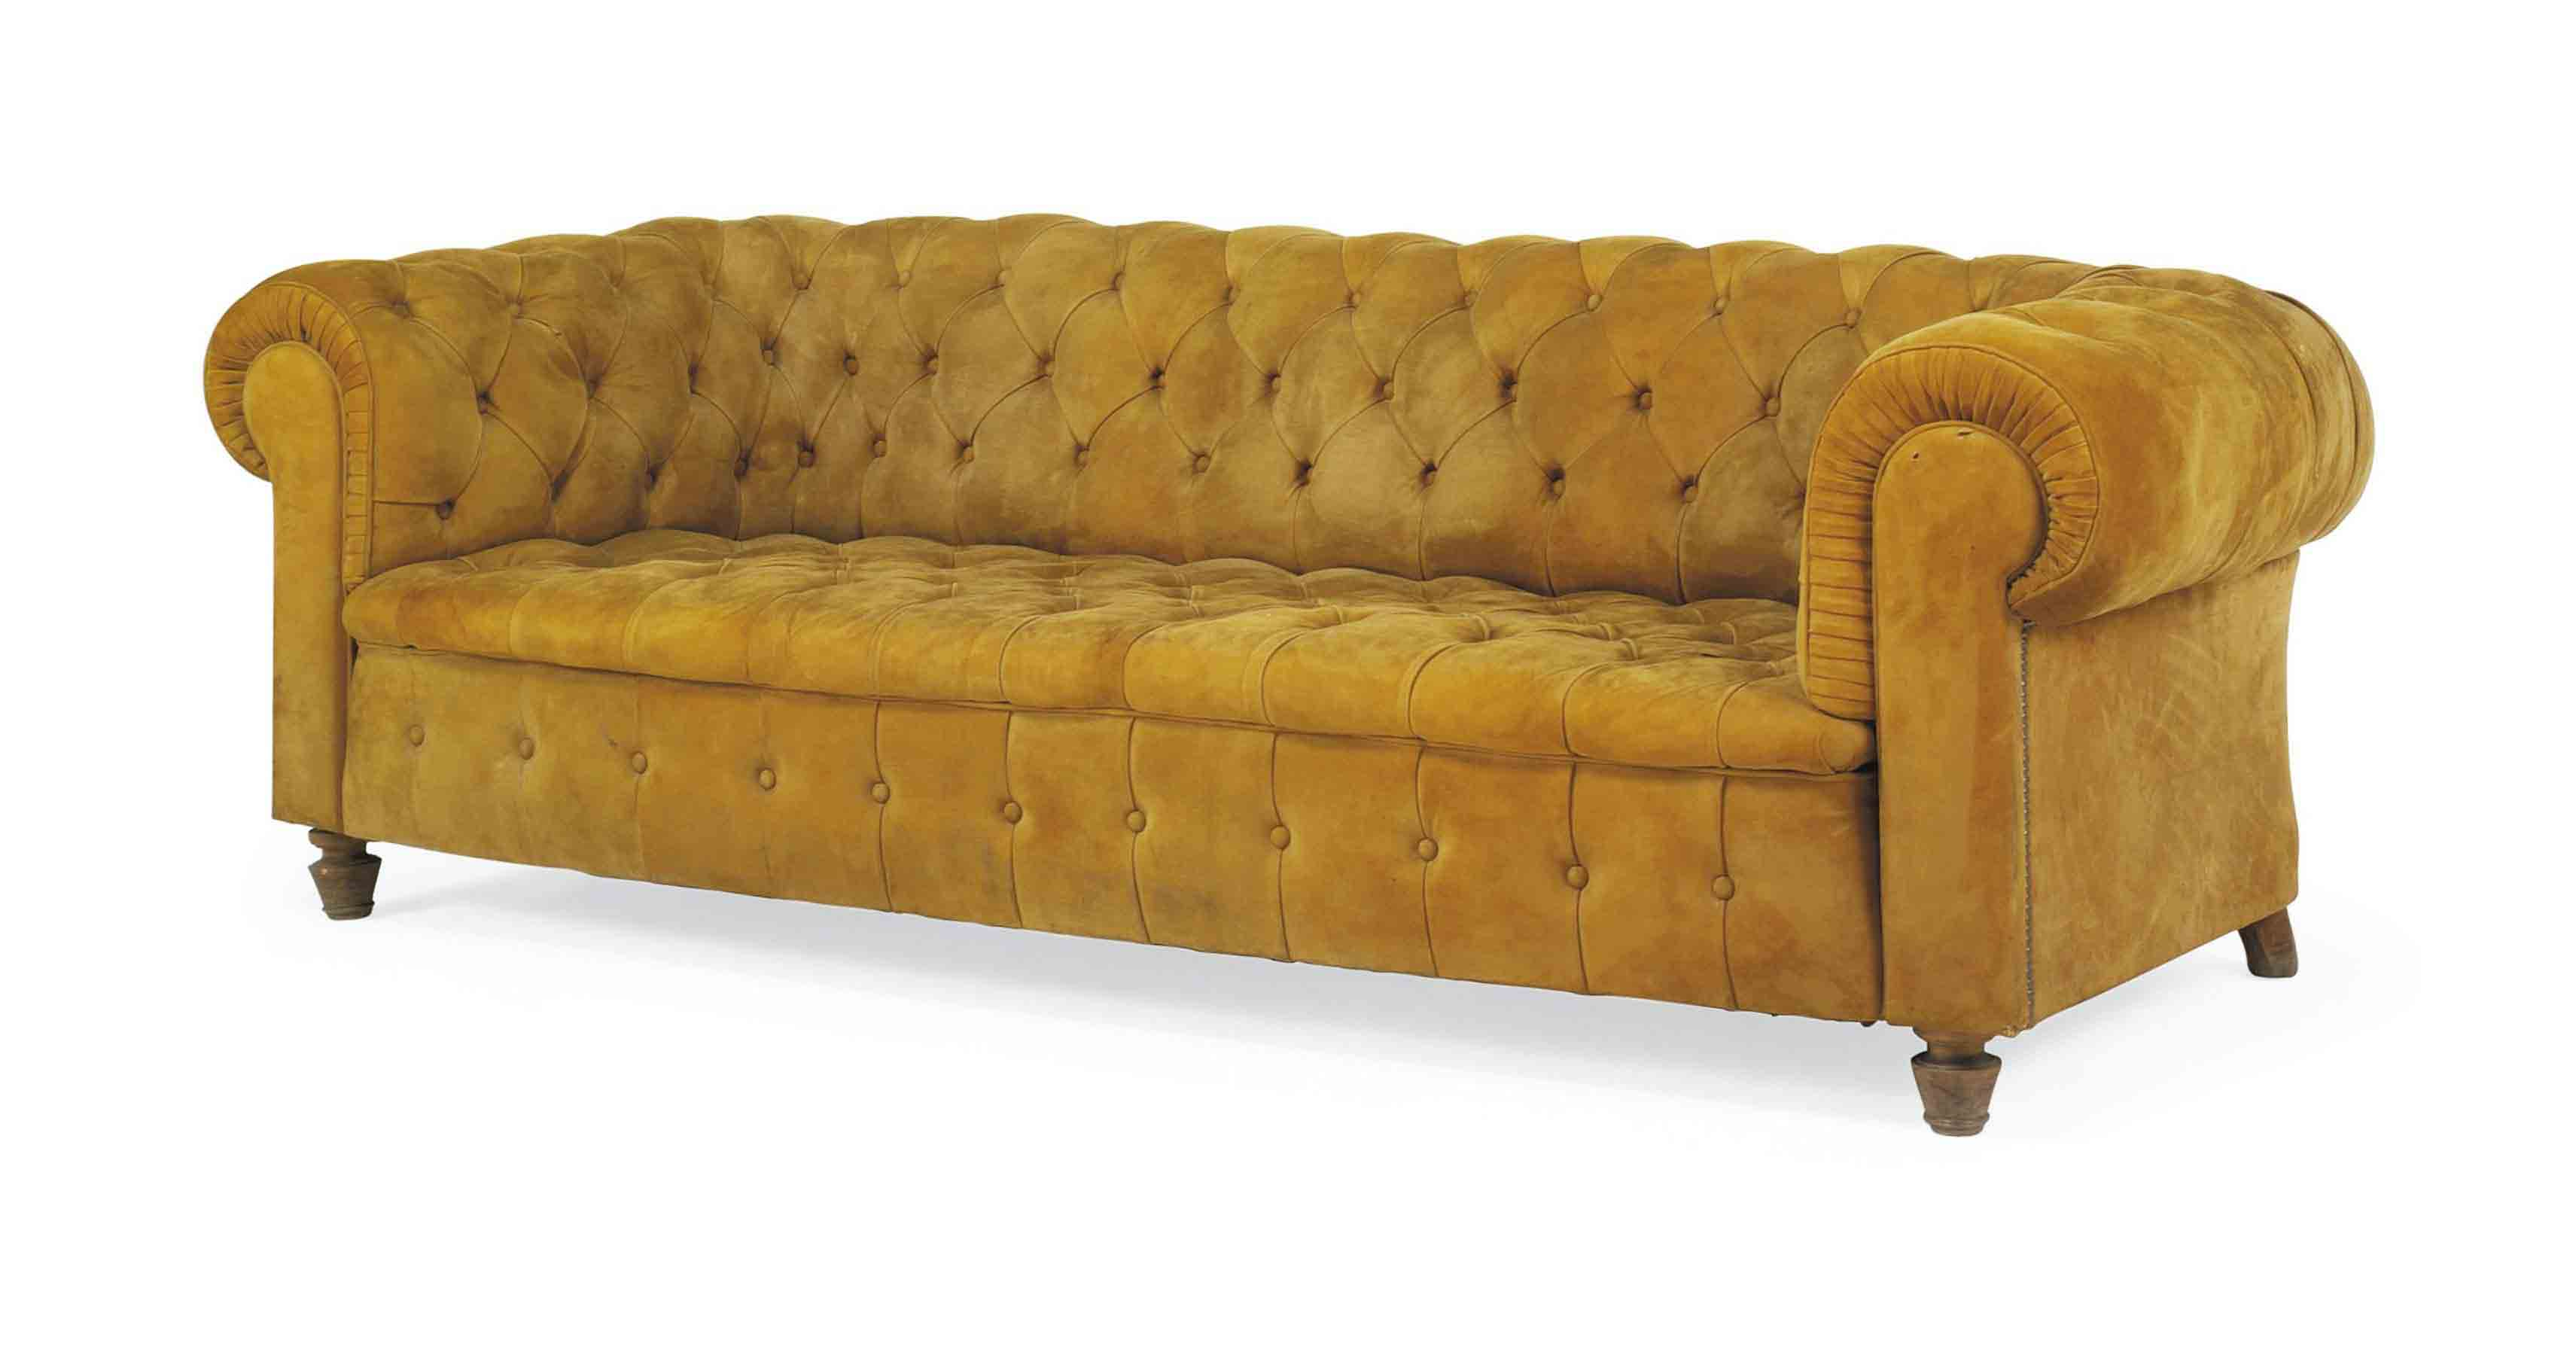 A Spanish Oned Suede Chesterfield